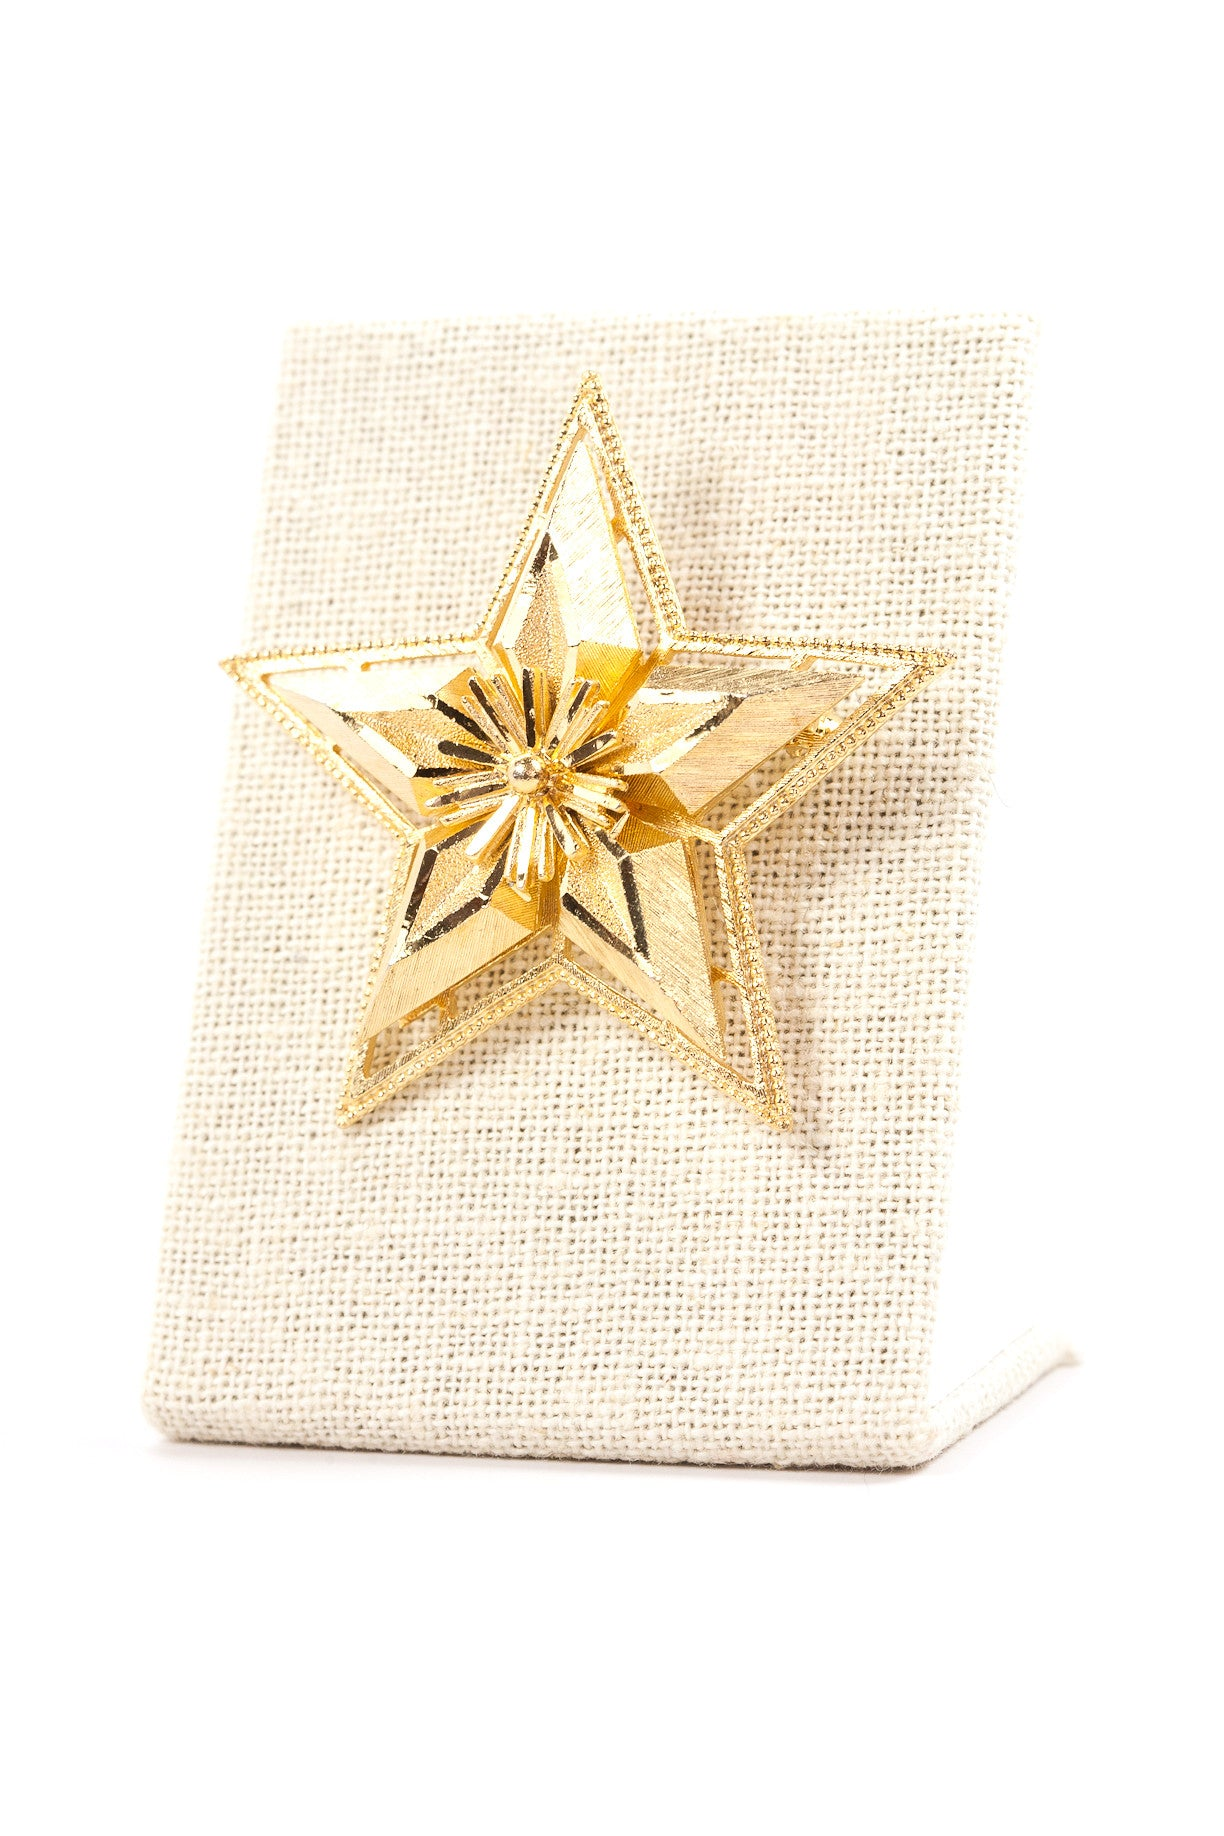 60's__CFW__Star Brooch